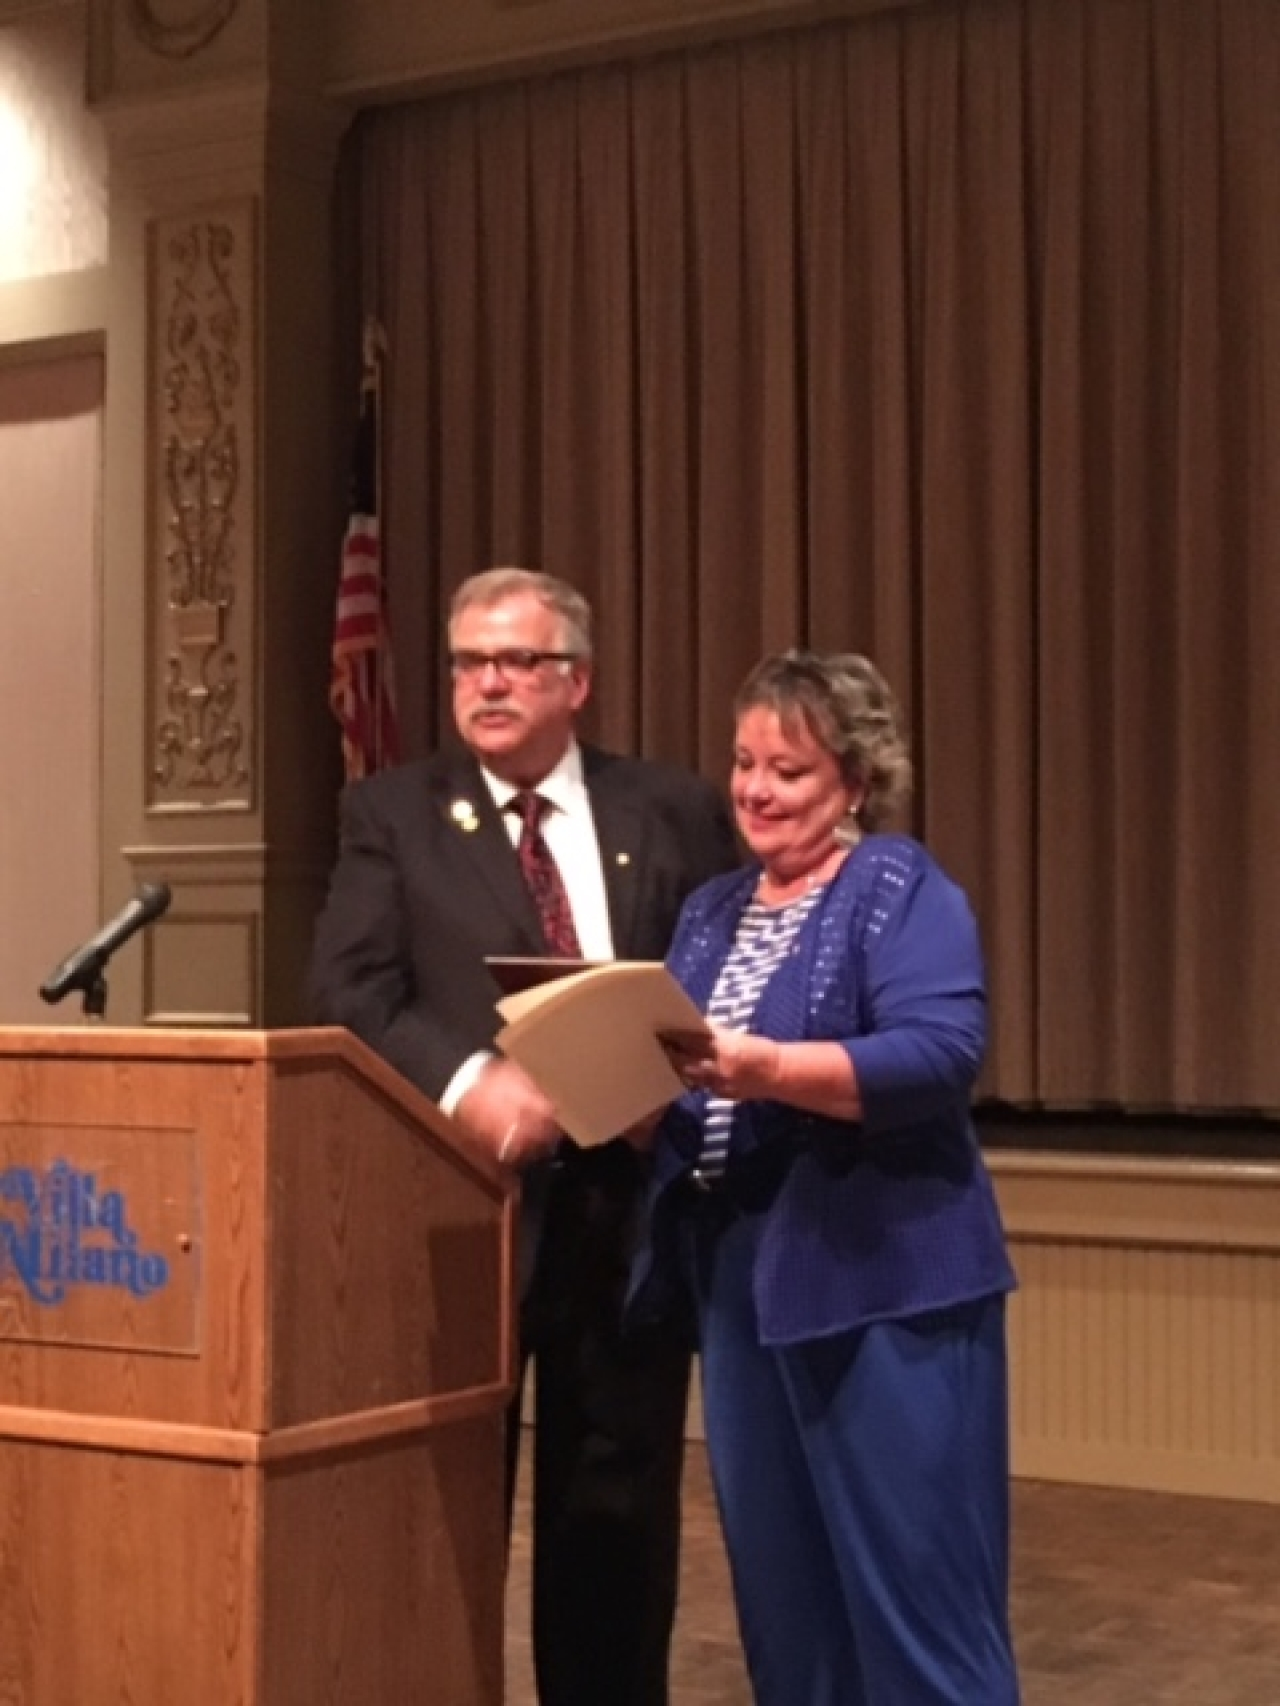 Rep. Grossman Receives Scottish Rite Award